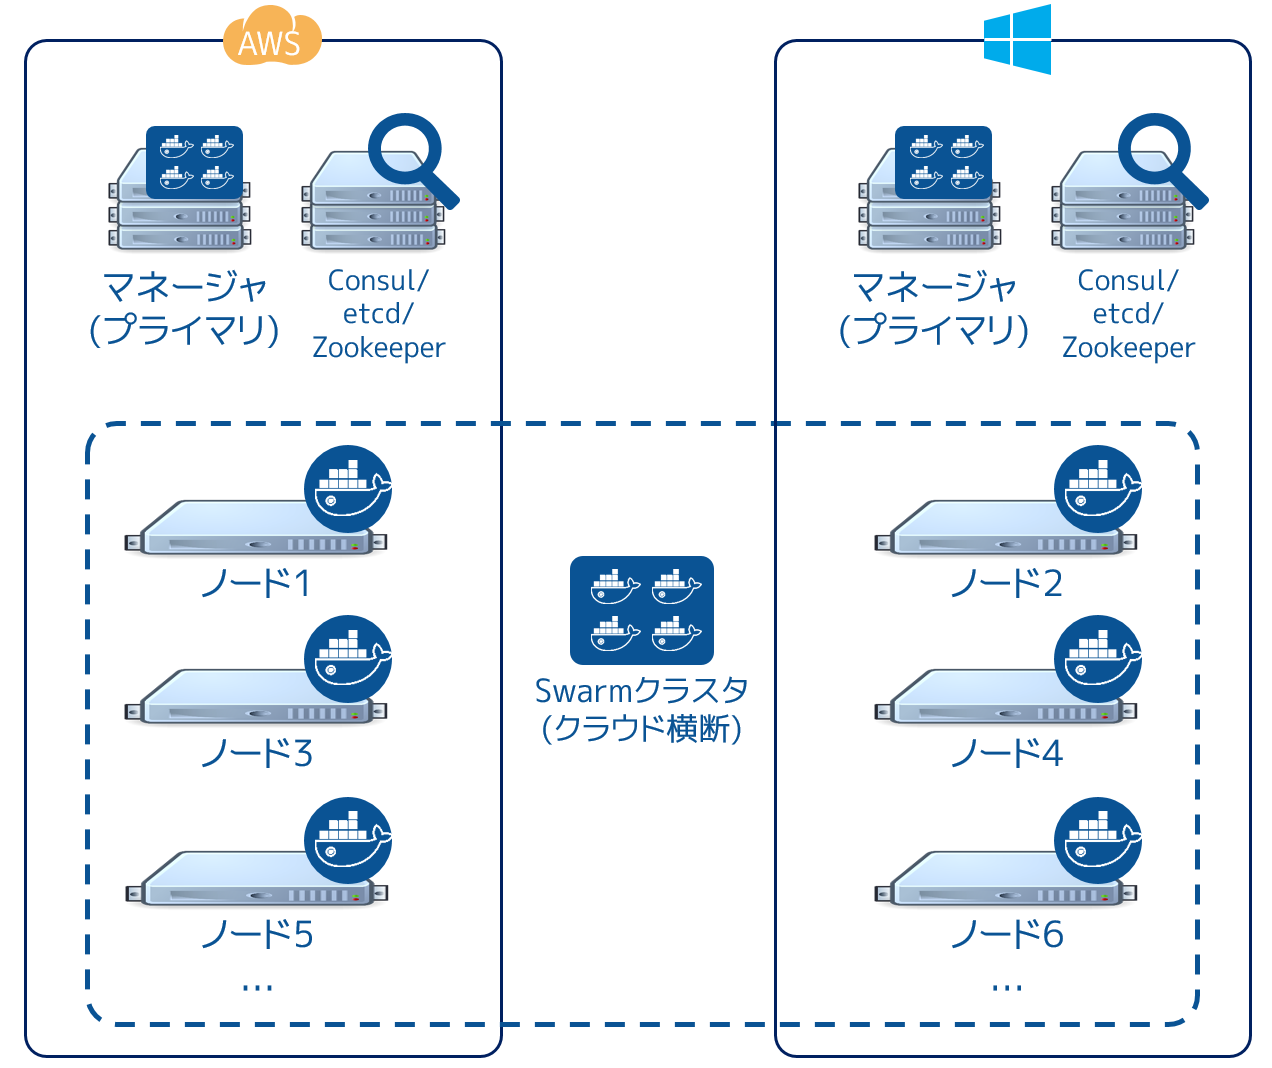 ../_images/swarm-across-aws-and-azure.png